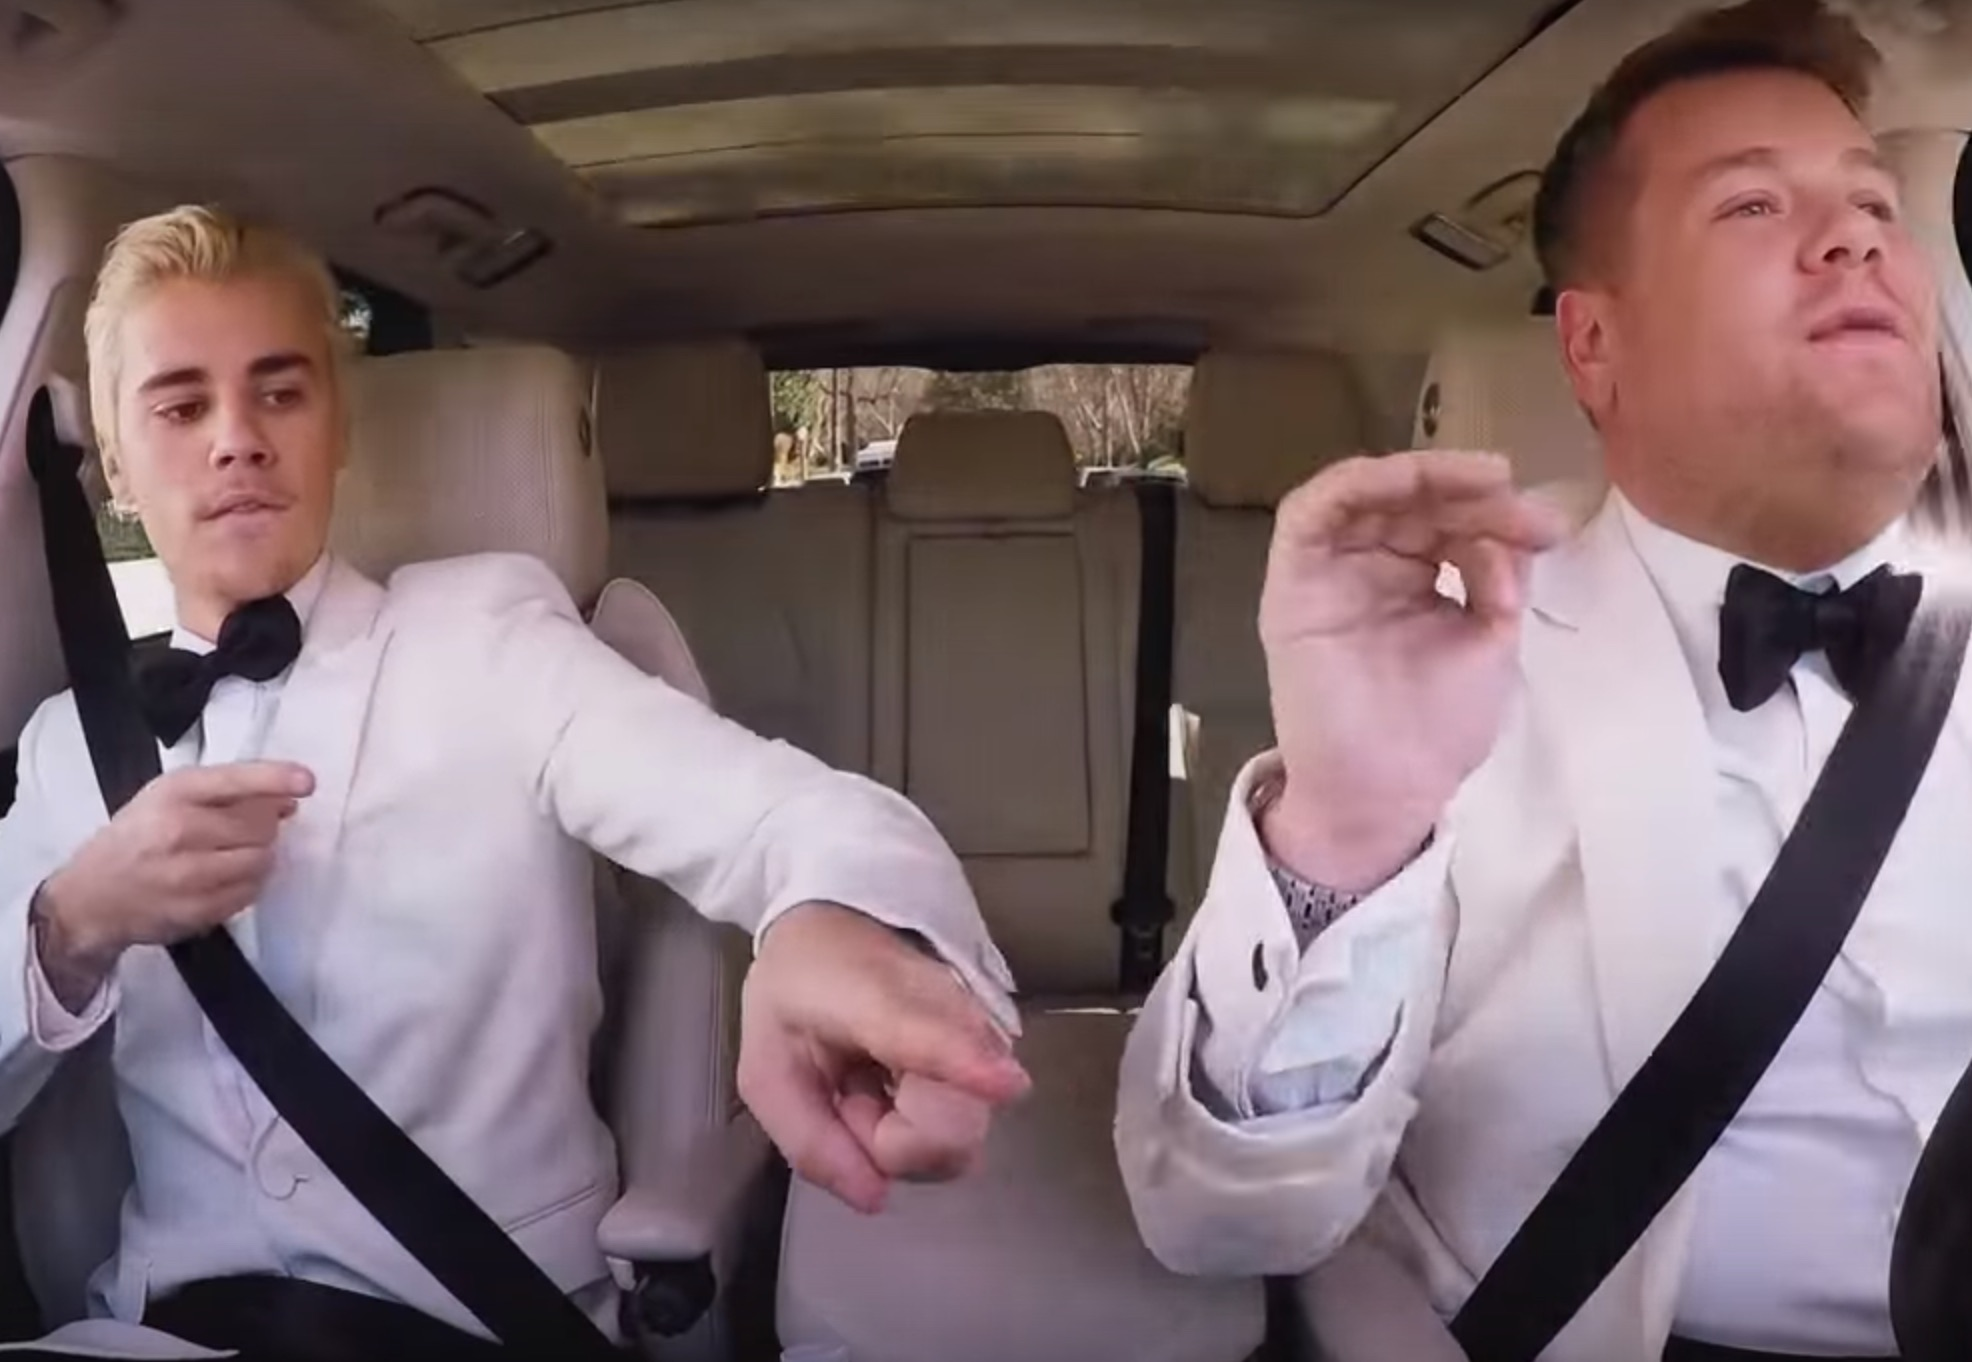 Justin Bieber and James Corden carpooled home from the Grammys